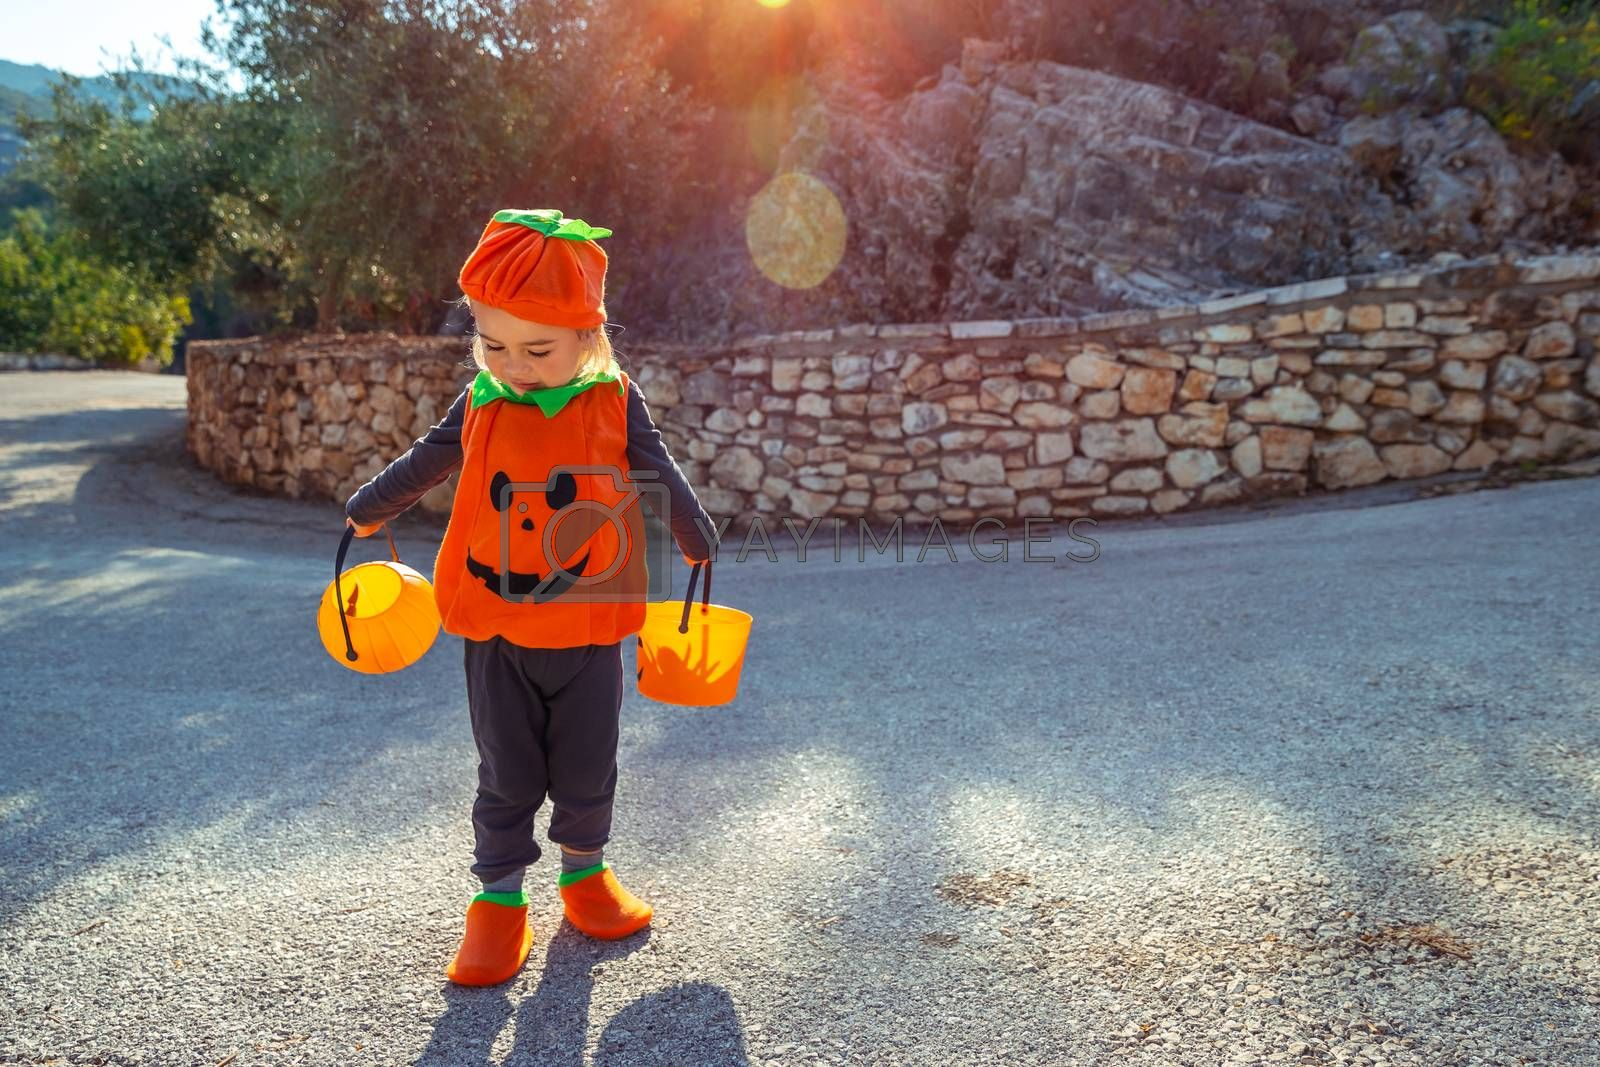 Royalty free image of Celebrating Halloween by Anna_Omelchenko